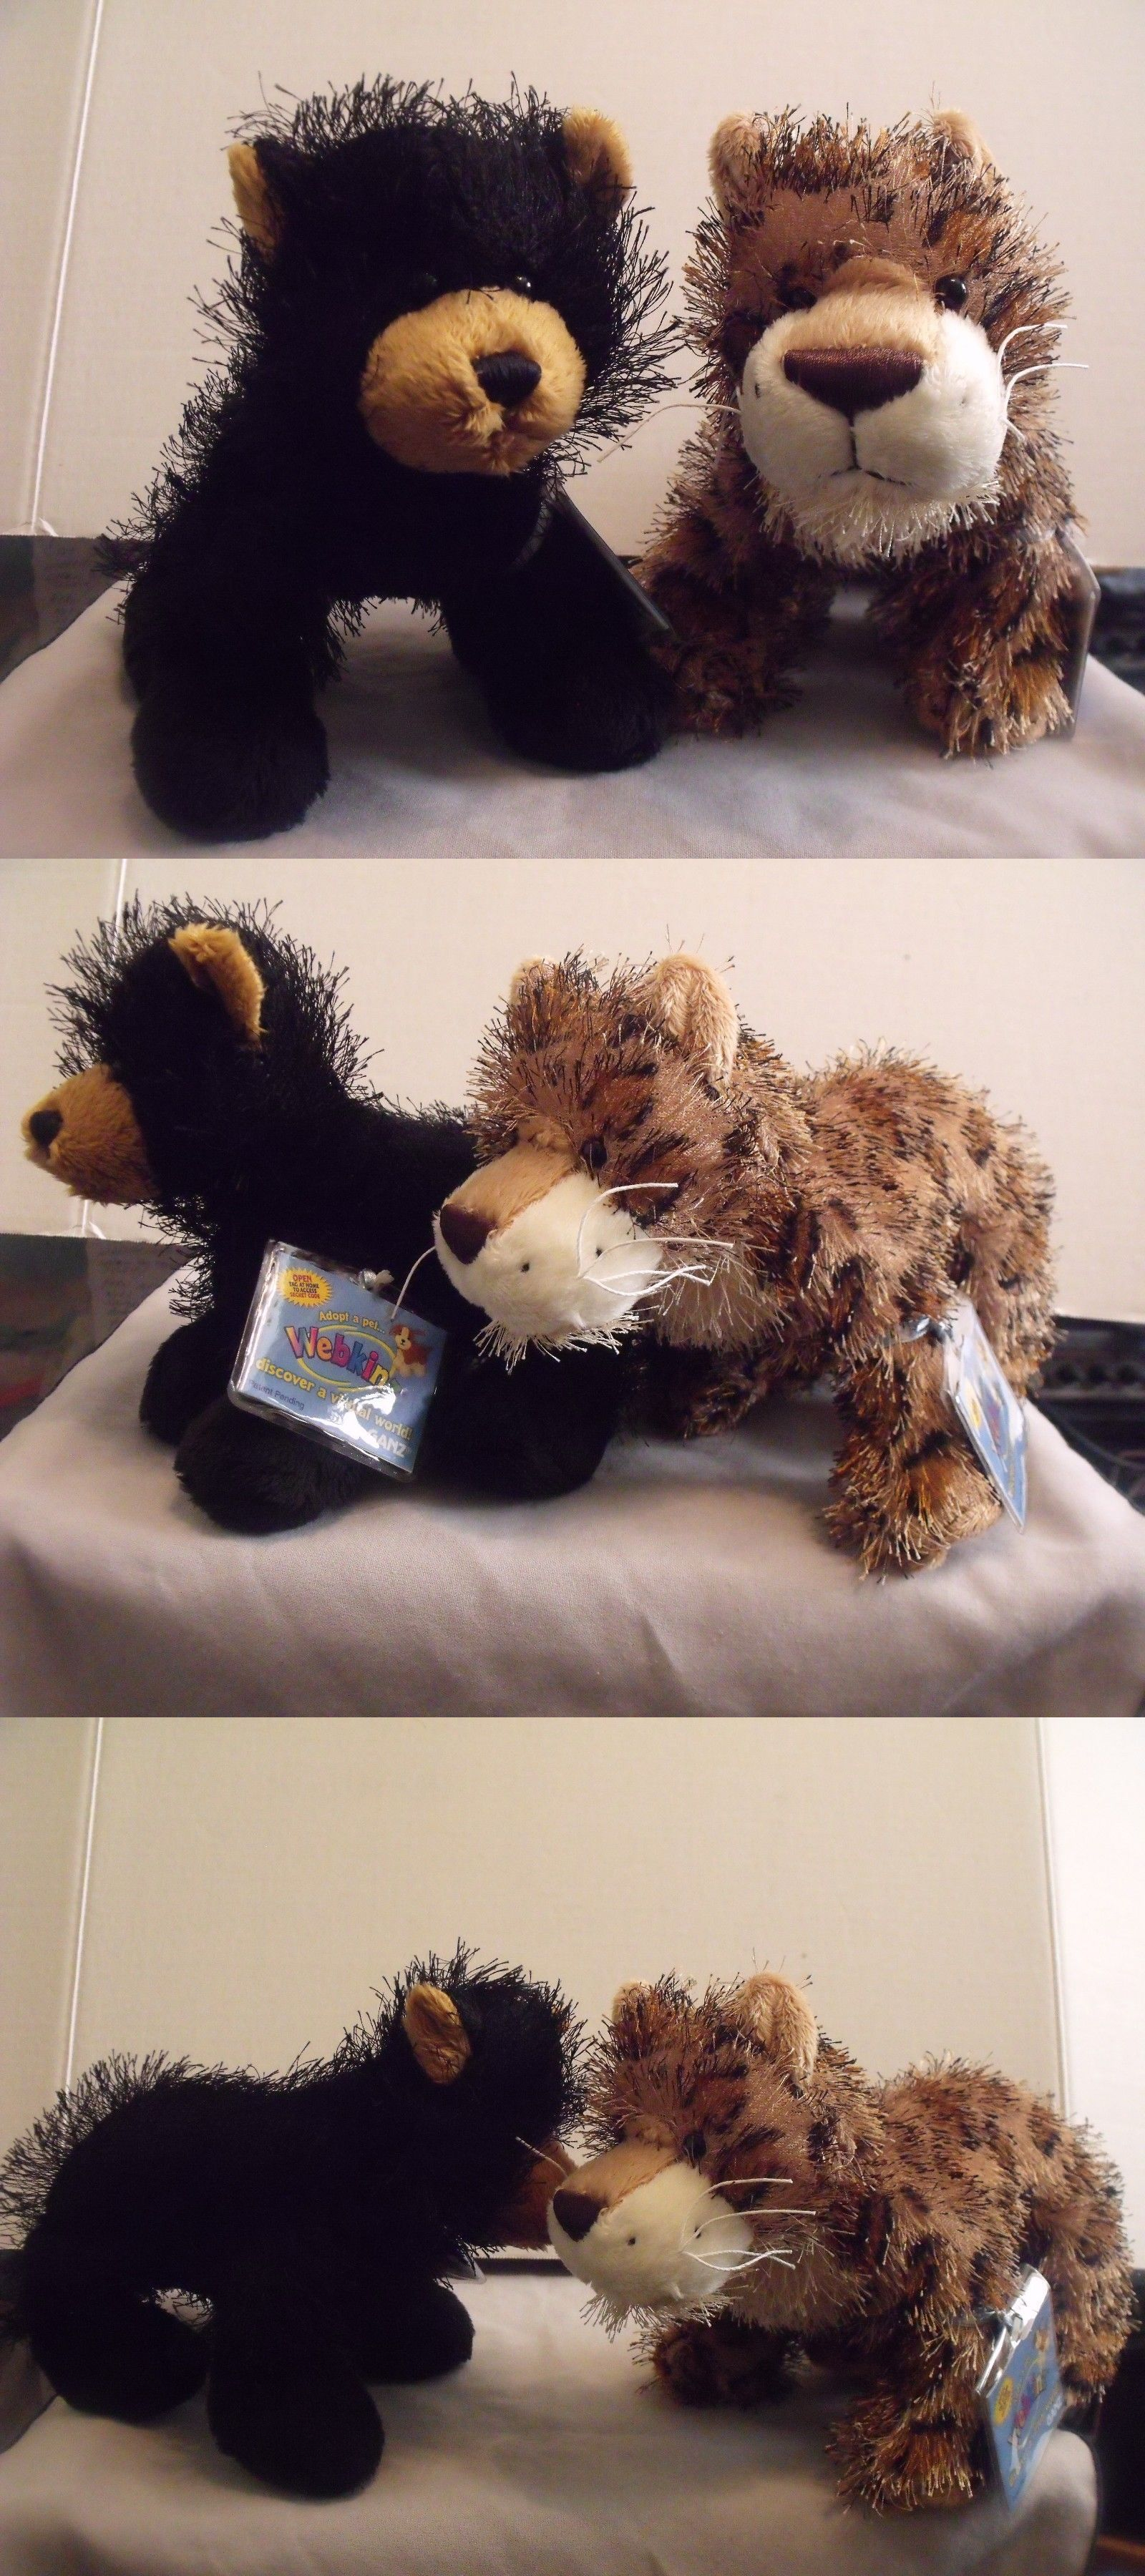 f68546404dfe Other Webkinz and LilKinz 158772: Gantz Webkinz 2 Leopard And Black Bear ->  BUY IT NOW ONLY: $10 on #eBay #other #webkinz #lilkinz #gantz #leopard  #black